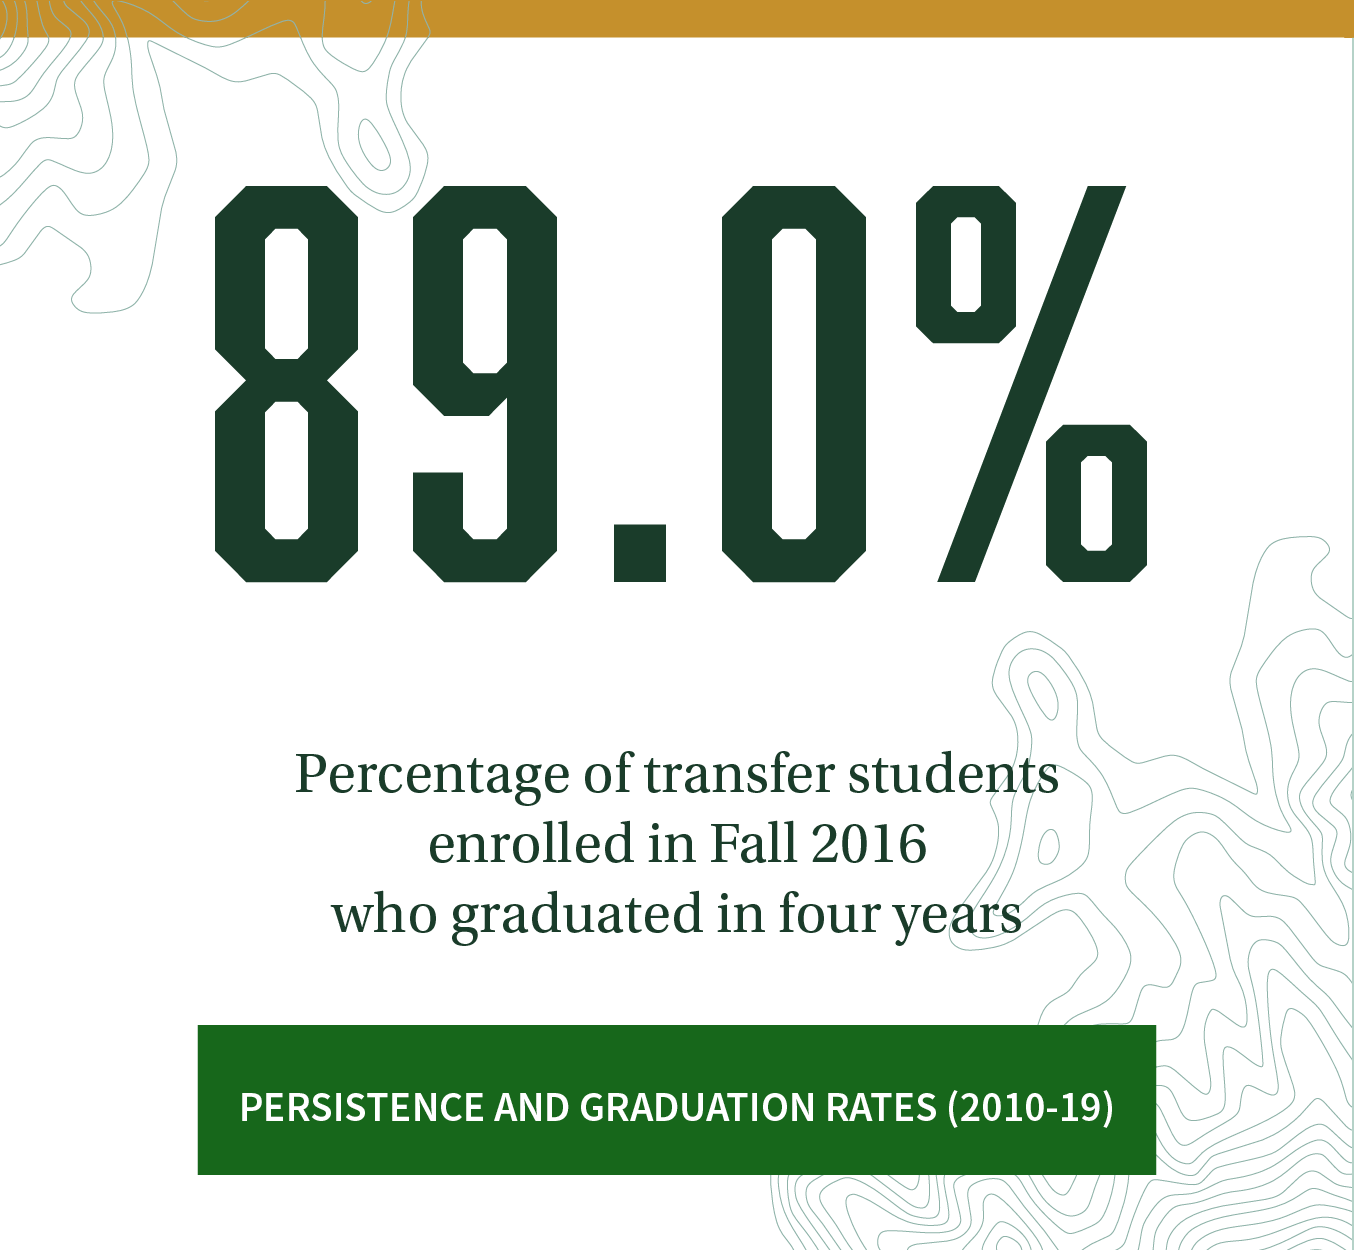 89.0% Percentage of transfer students enrolled in Fall 2016 who graduated in four years. Click to review more persistence and graduation rate trends (2003-20).